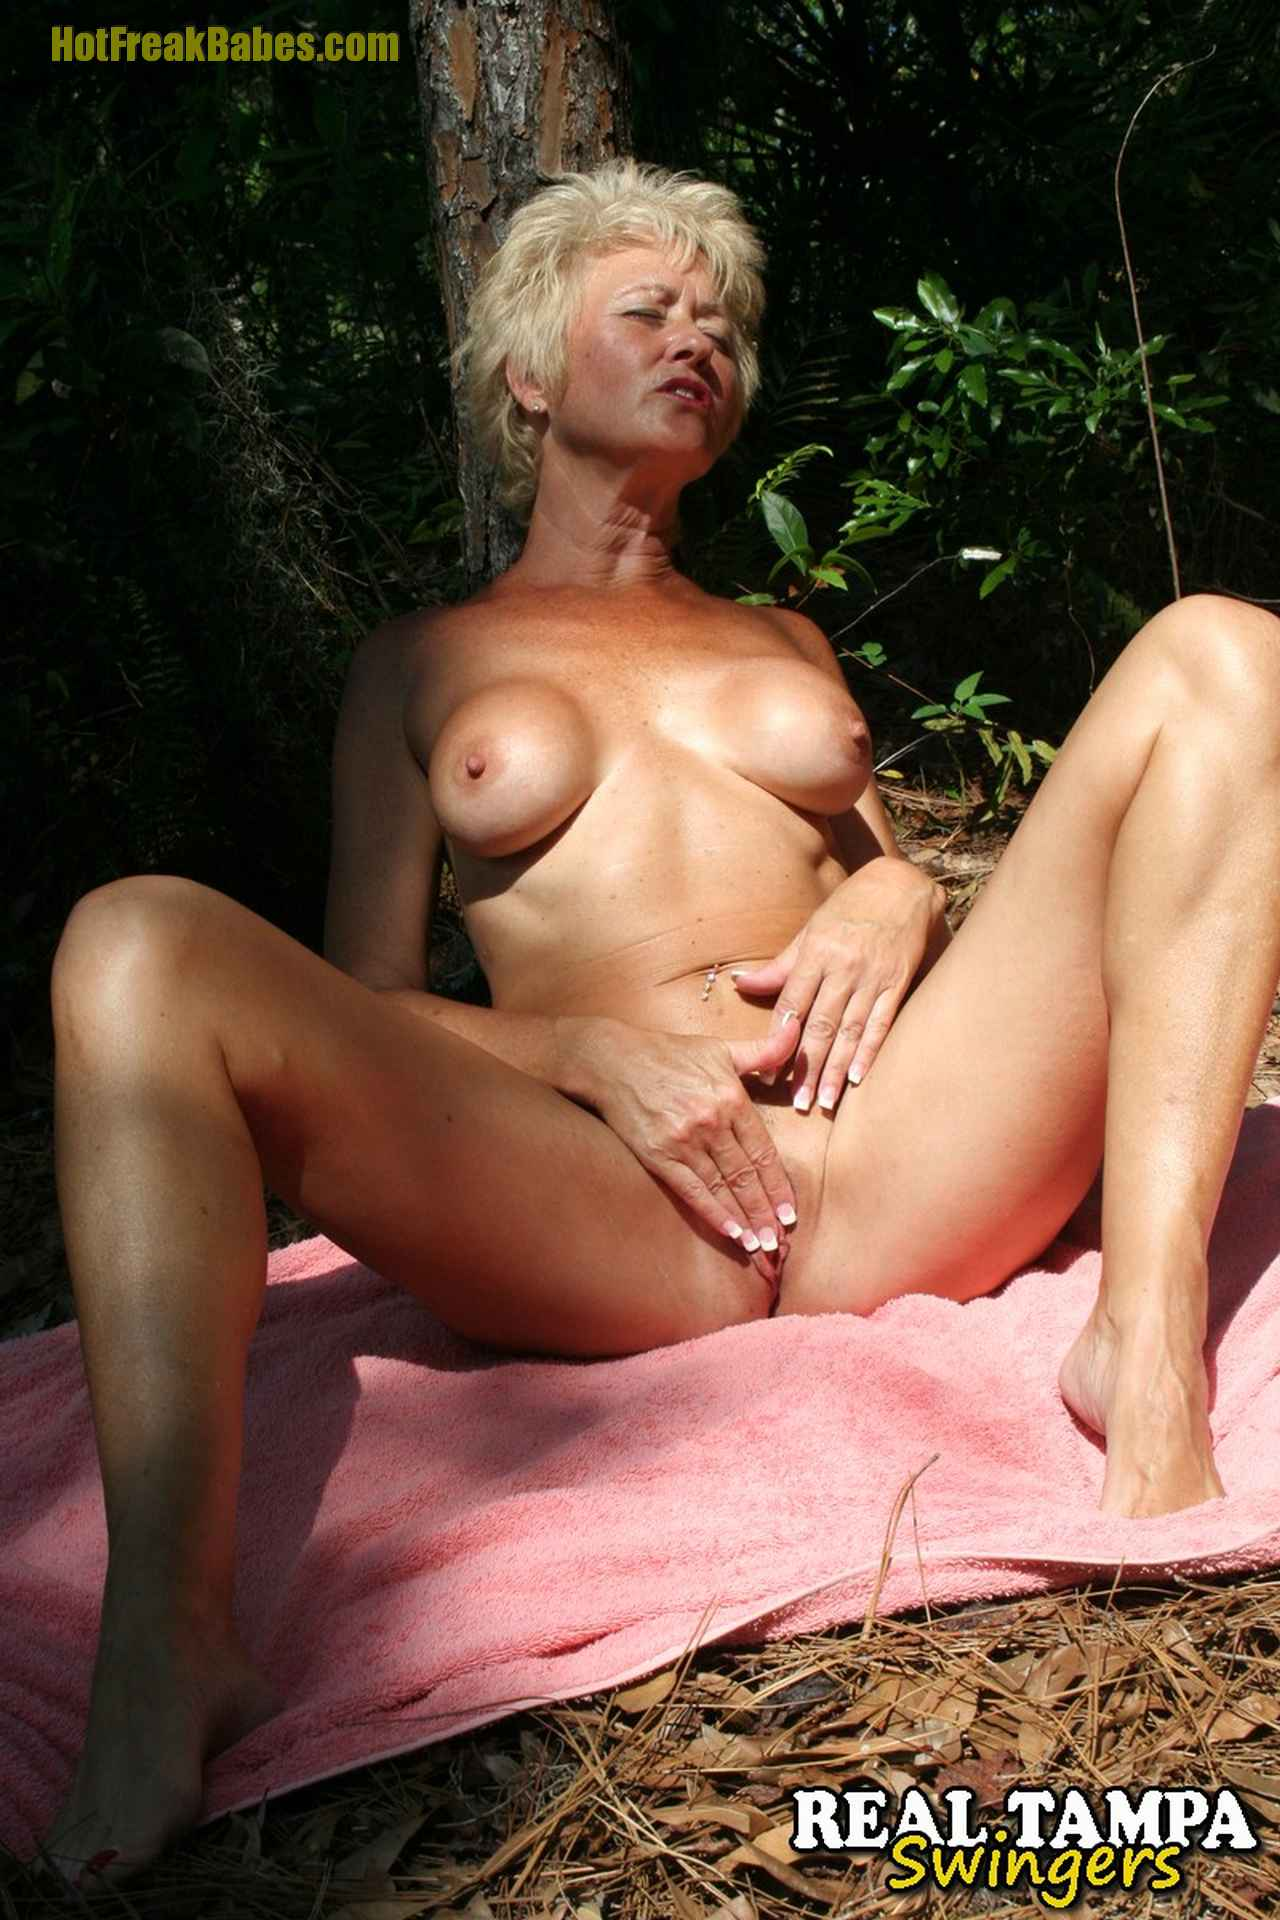 The blond swinger Blonde Swinger Porn Videos,